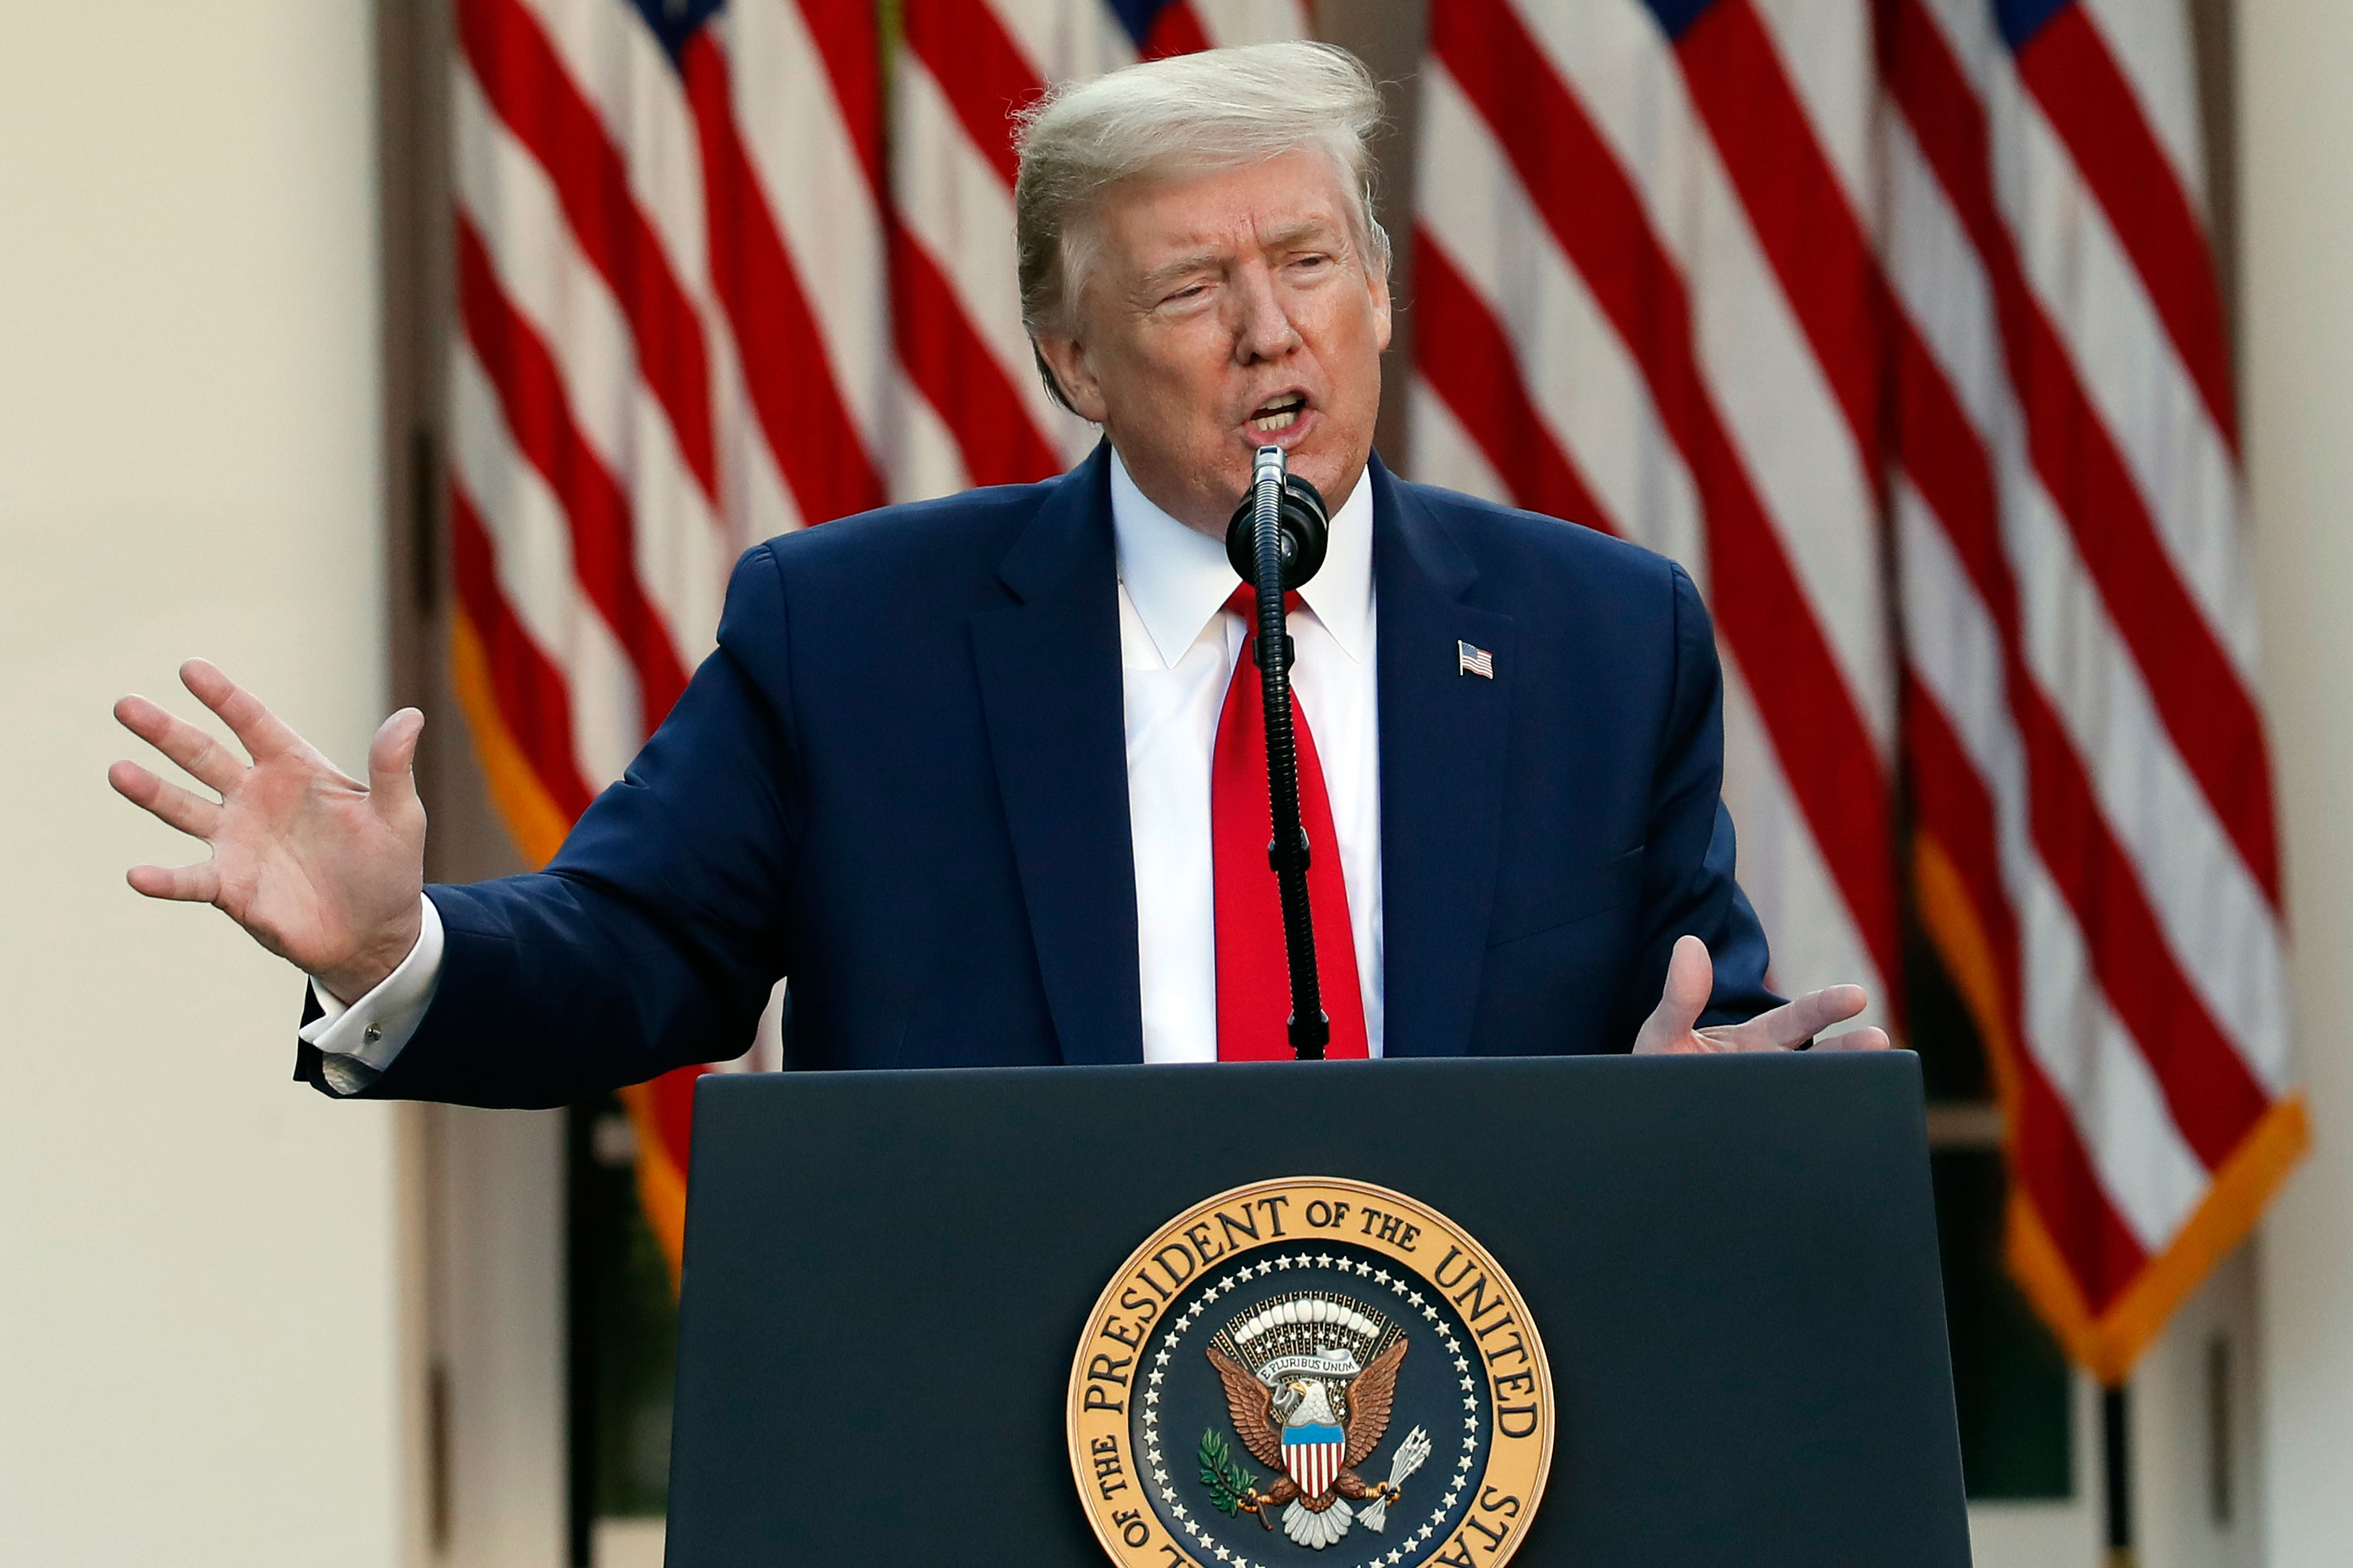 US President Donald Trump speaks at a news briefing in the Rose Garden of the White House on April 27 in Washington.